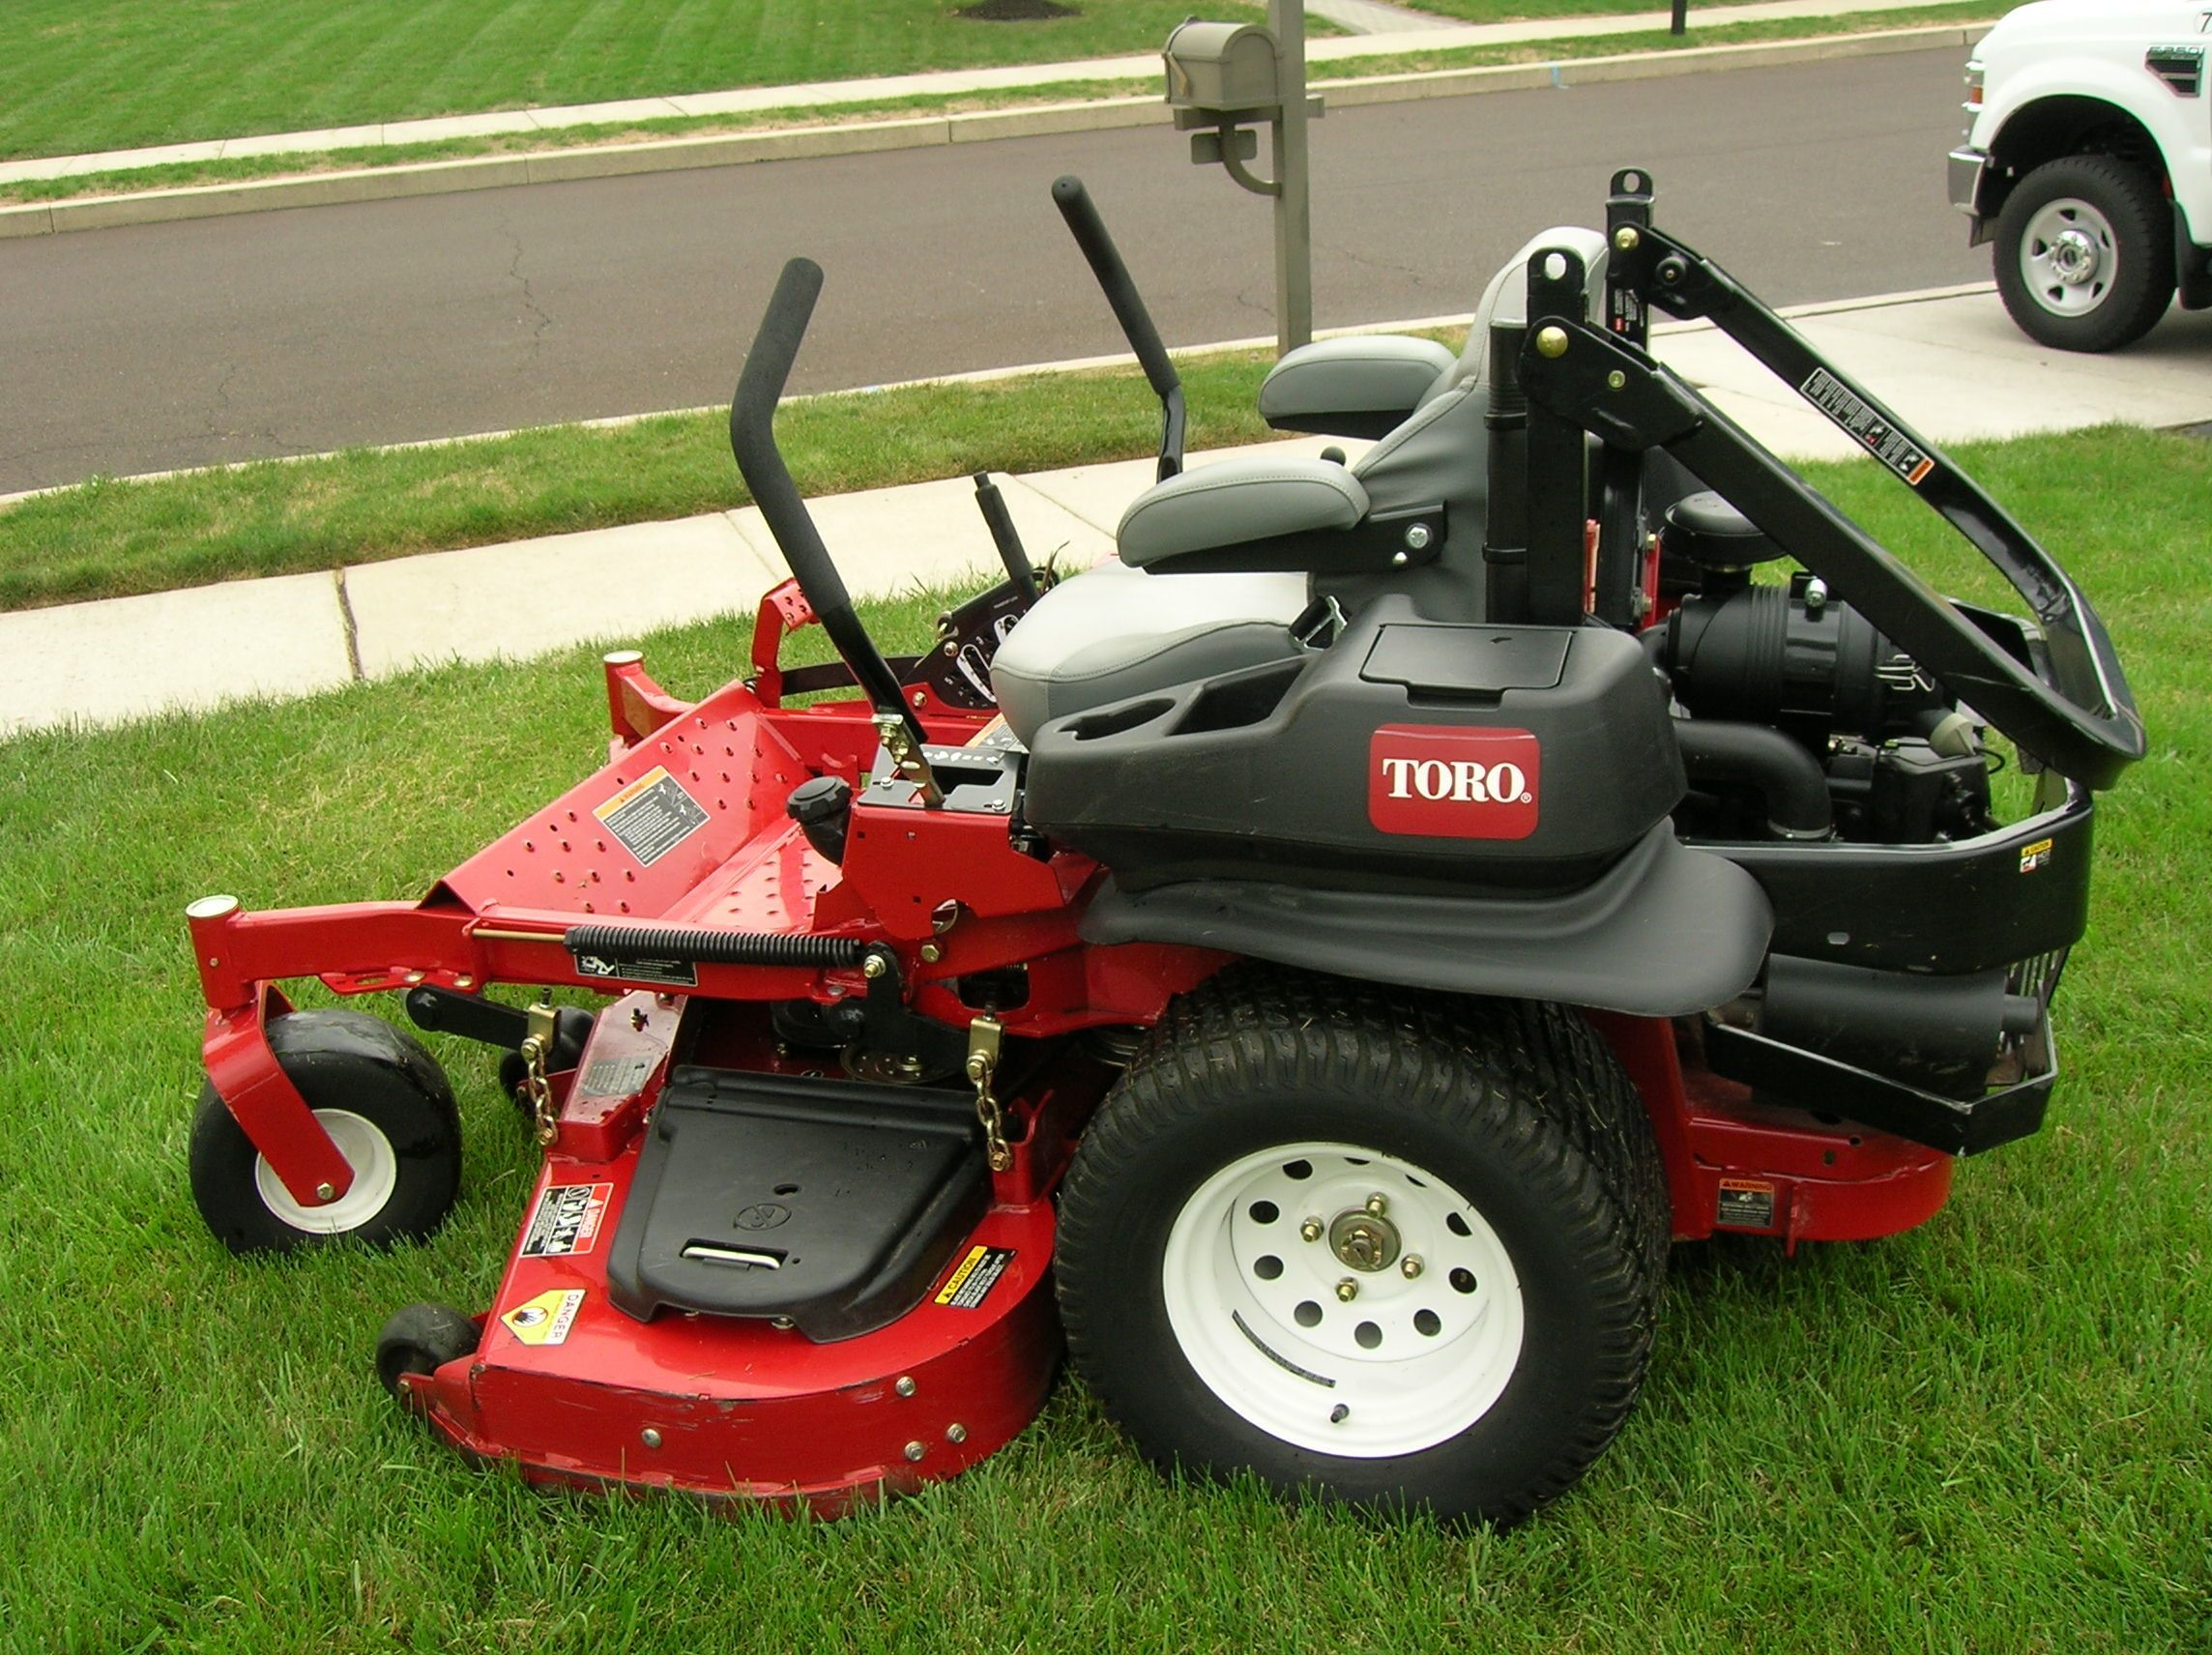 toro riding lawn mowers in Okeechobee Florida at Lawn Tamer Inc